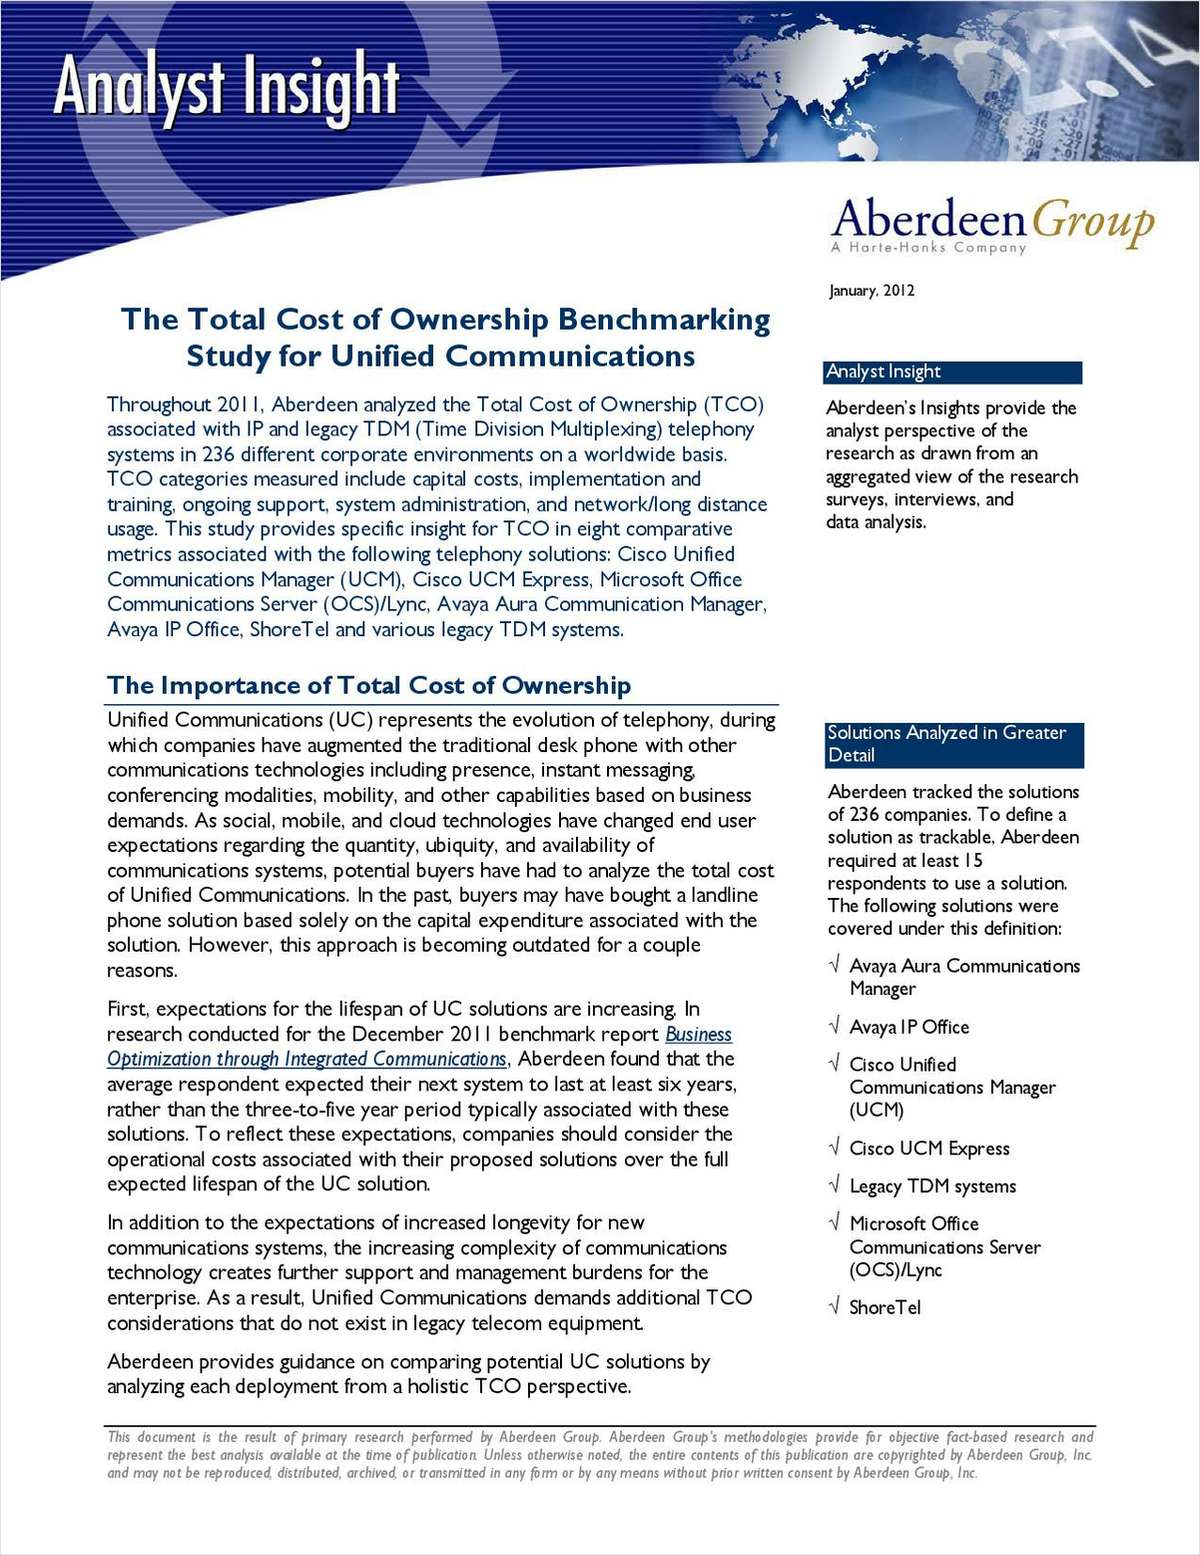 Aberdeen TCO Benchmarking Study